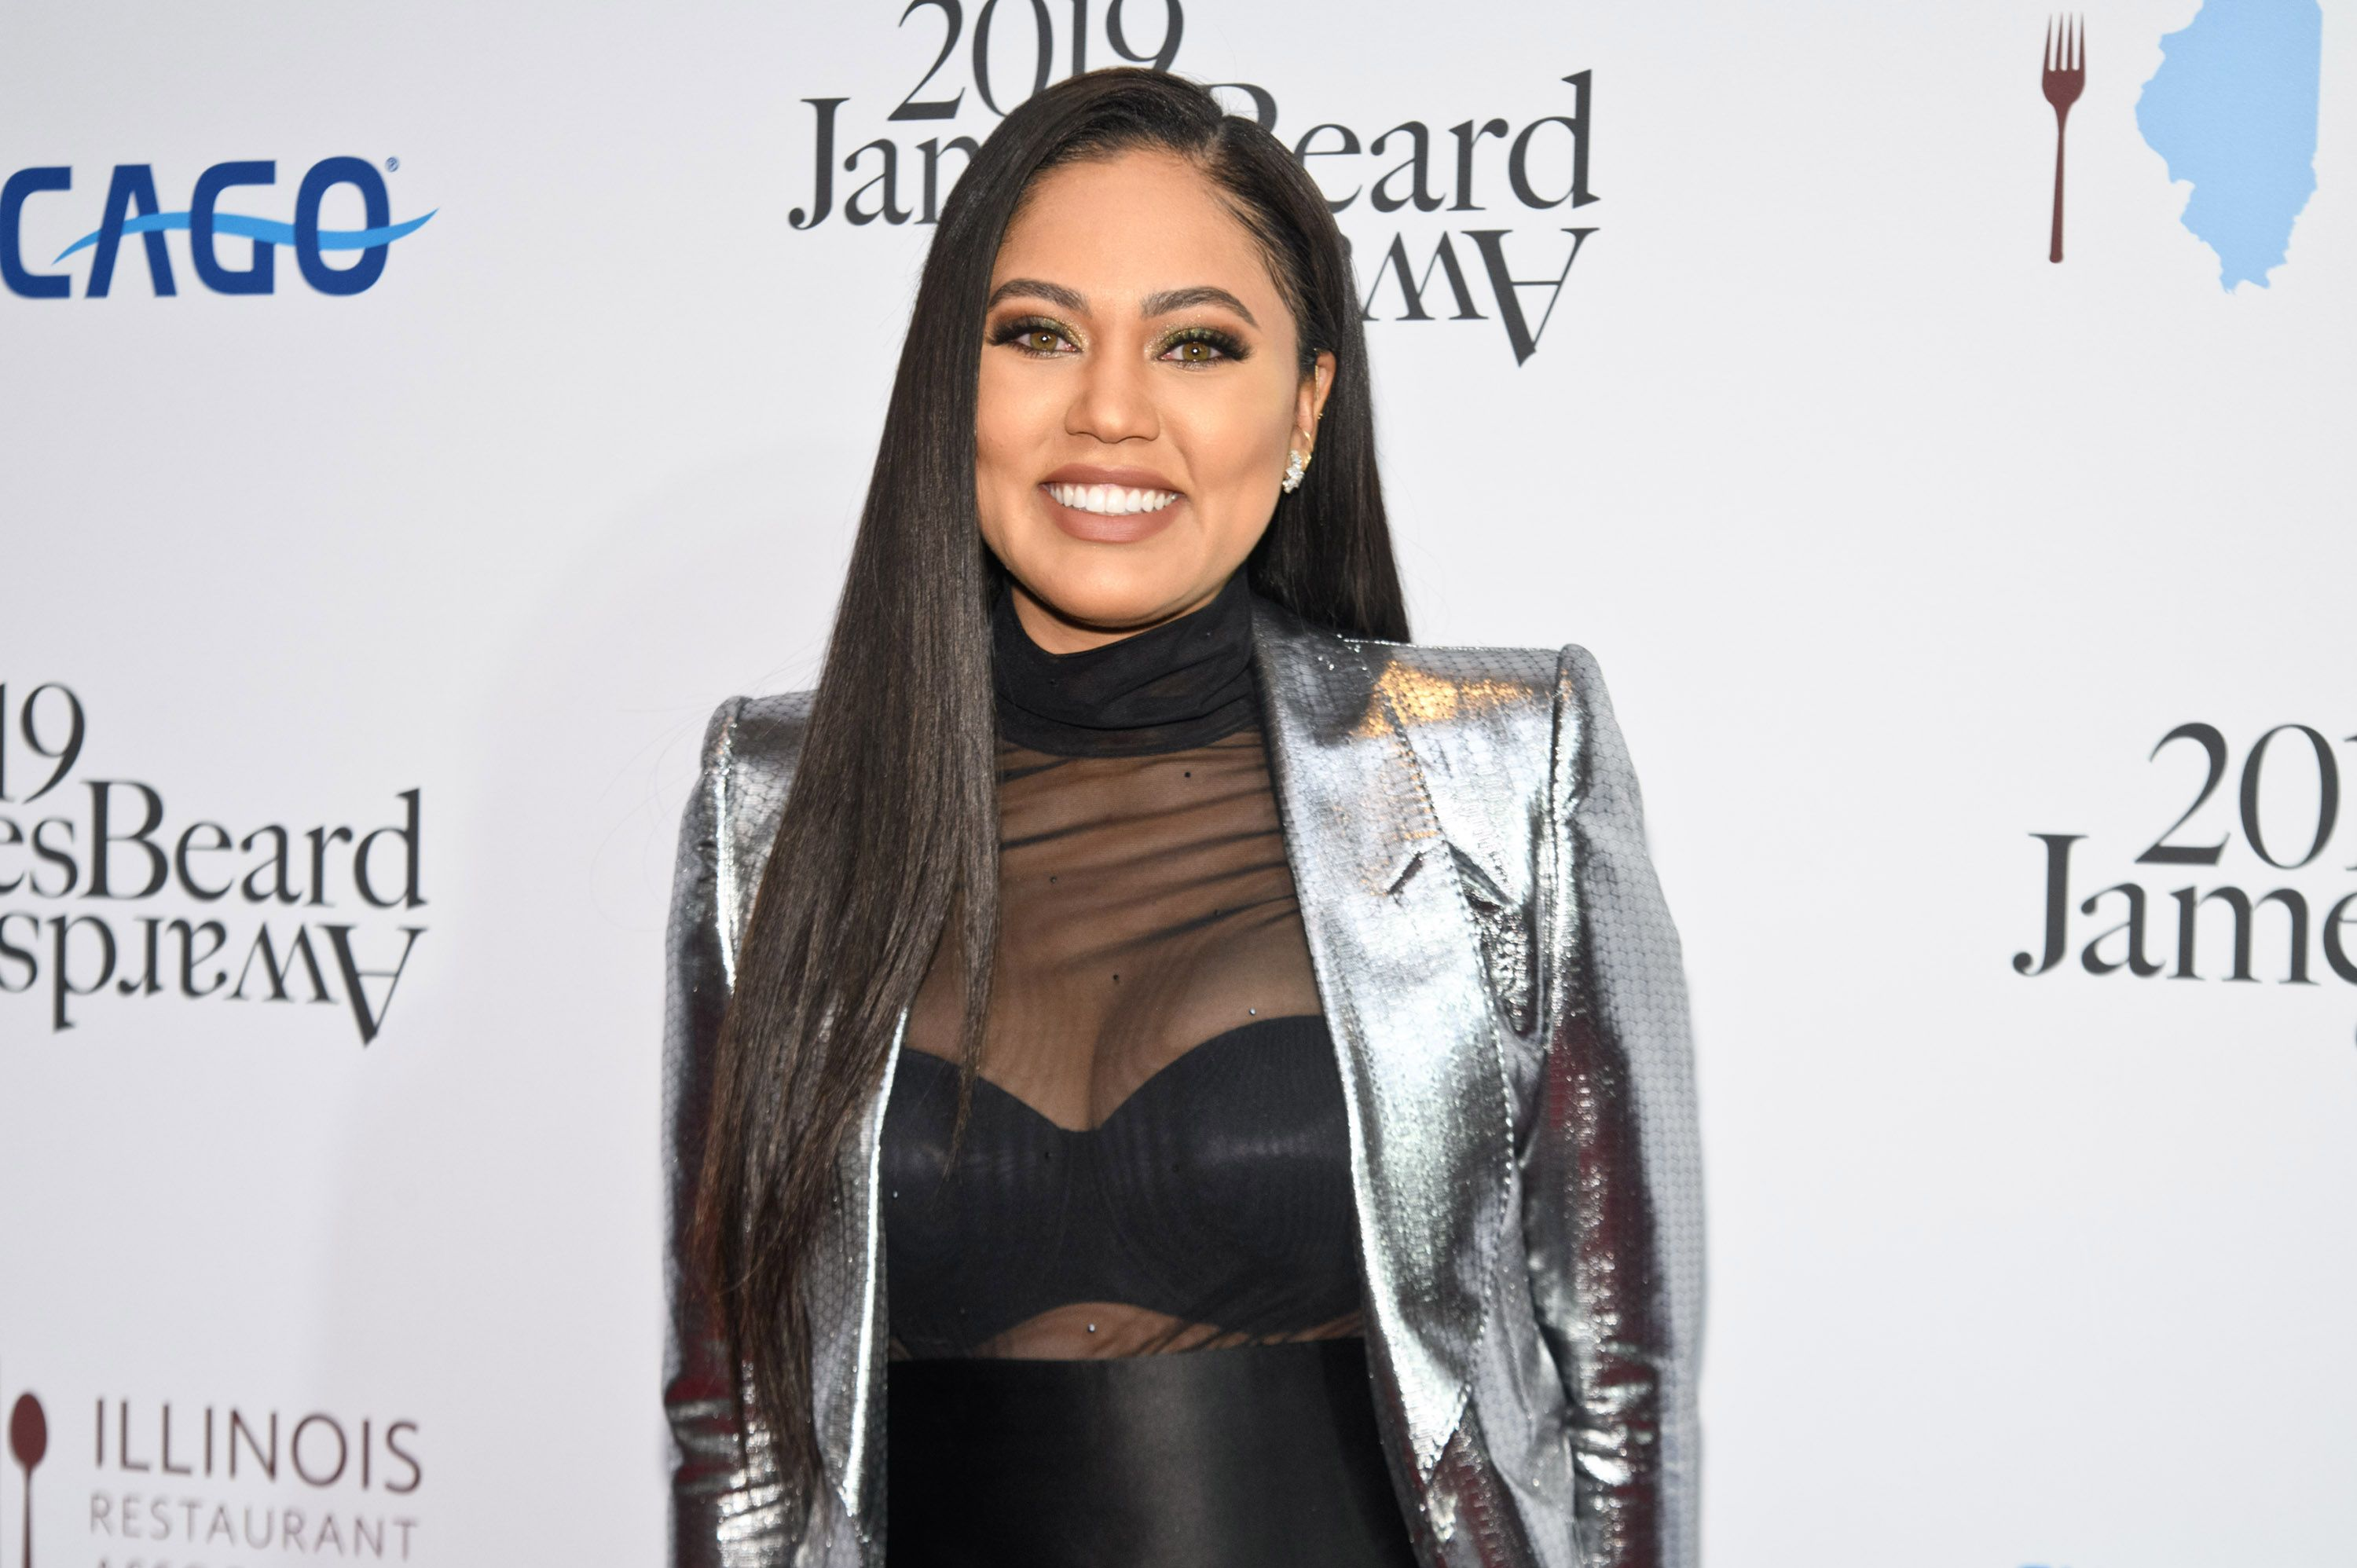 Ayesha Curry Responds To Body-Shaming Comments About 10-Month-Old Son